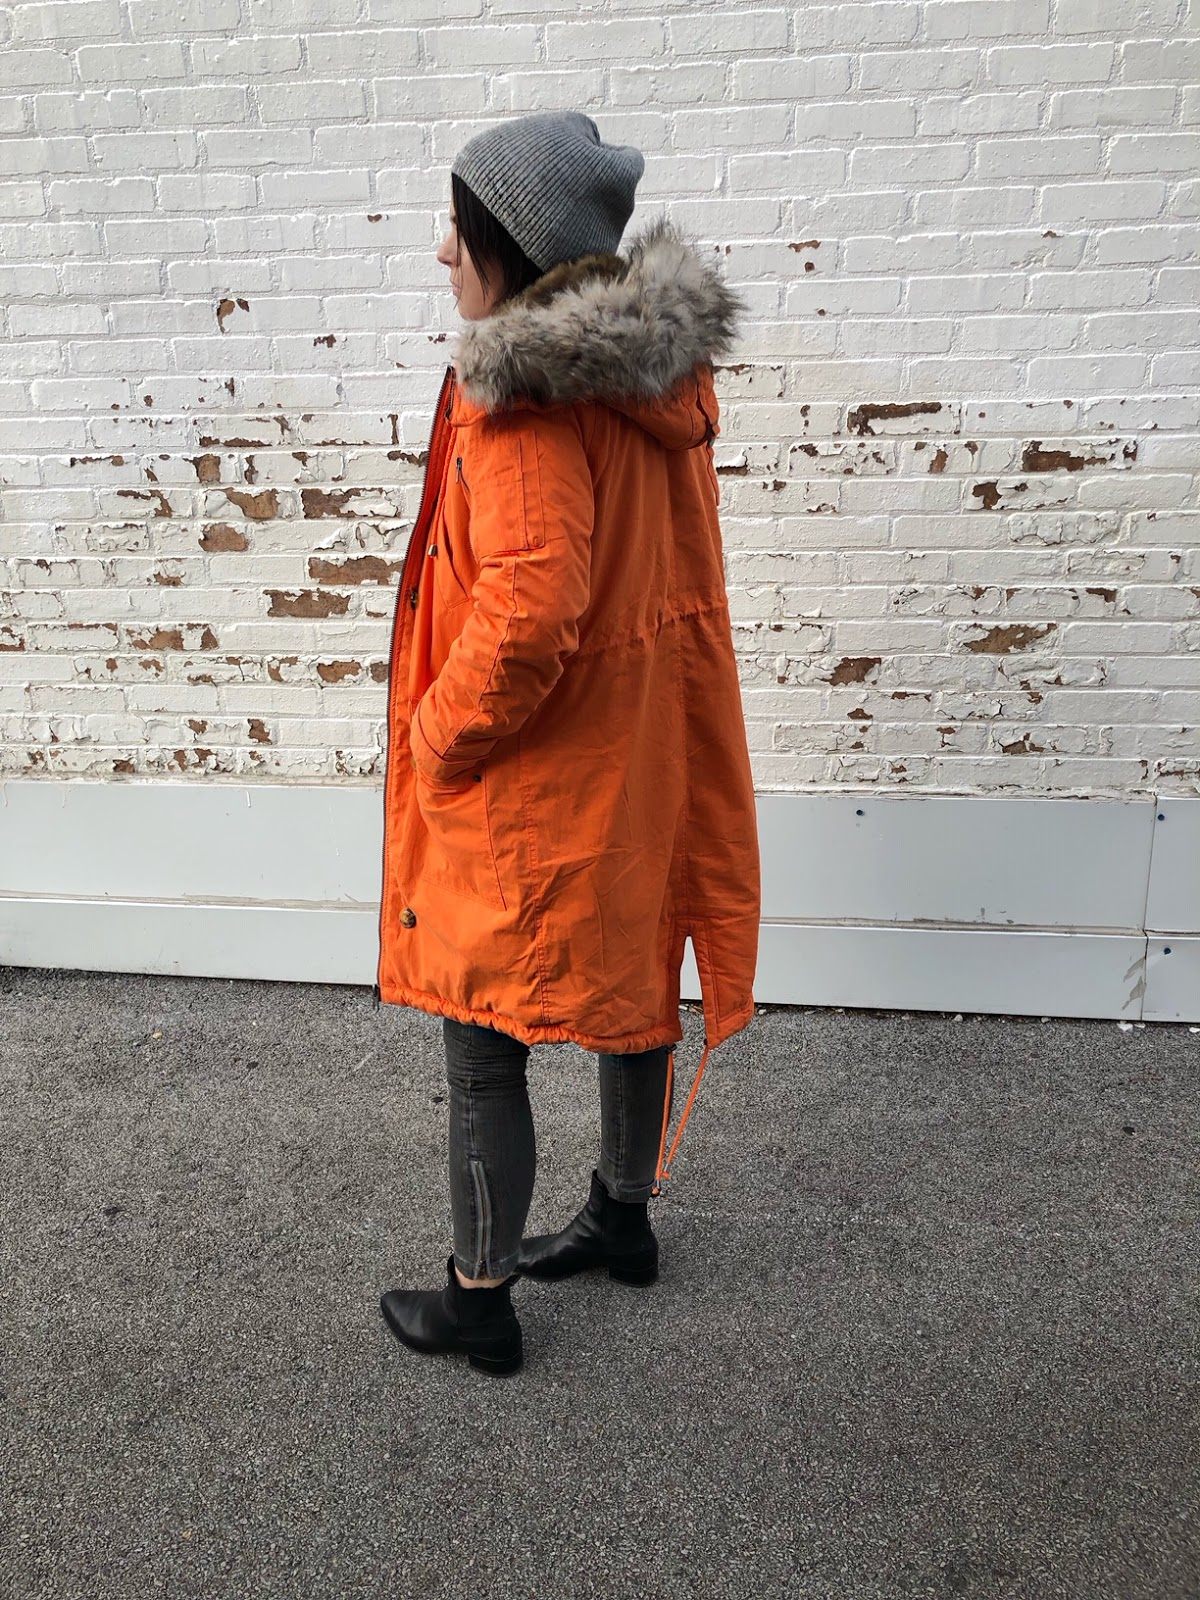 How to wear a bright orange color parka coat